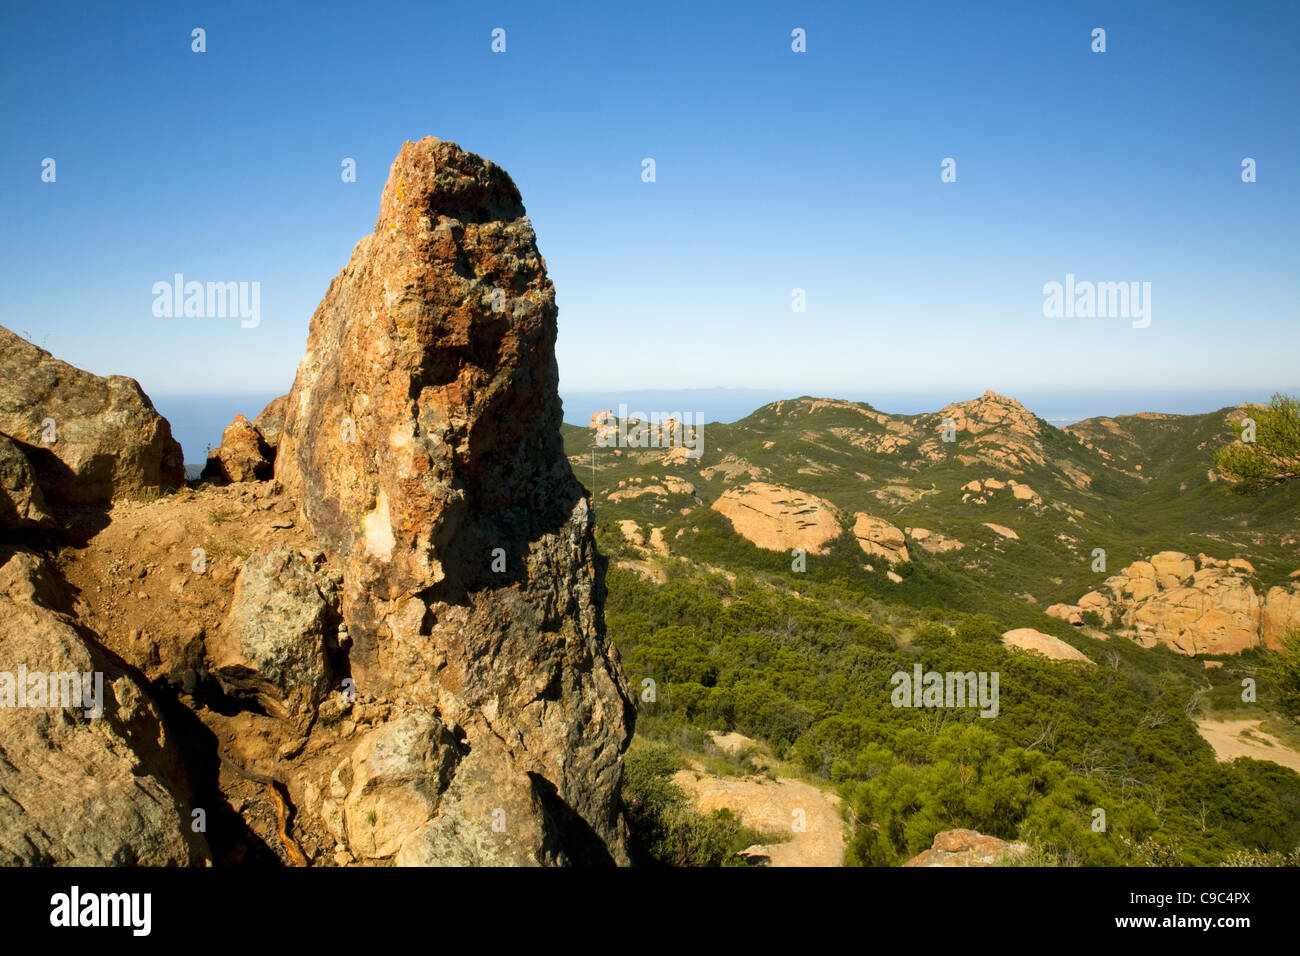 CALIFORNIA - Sandstone spire at the summit of Sandstone Mountain located along the Backbone Trail in the Santa Monica - Stock Image